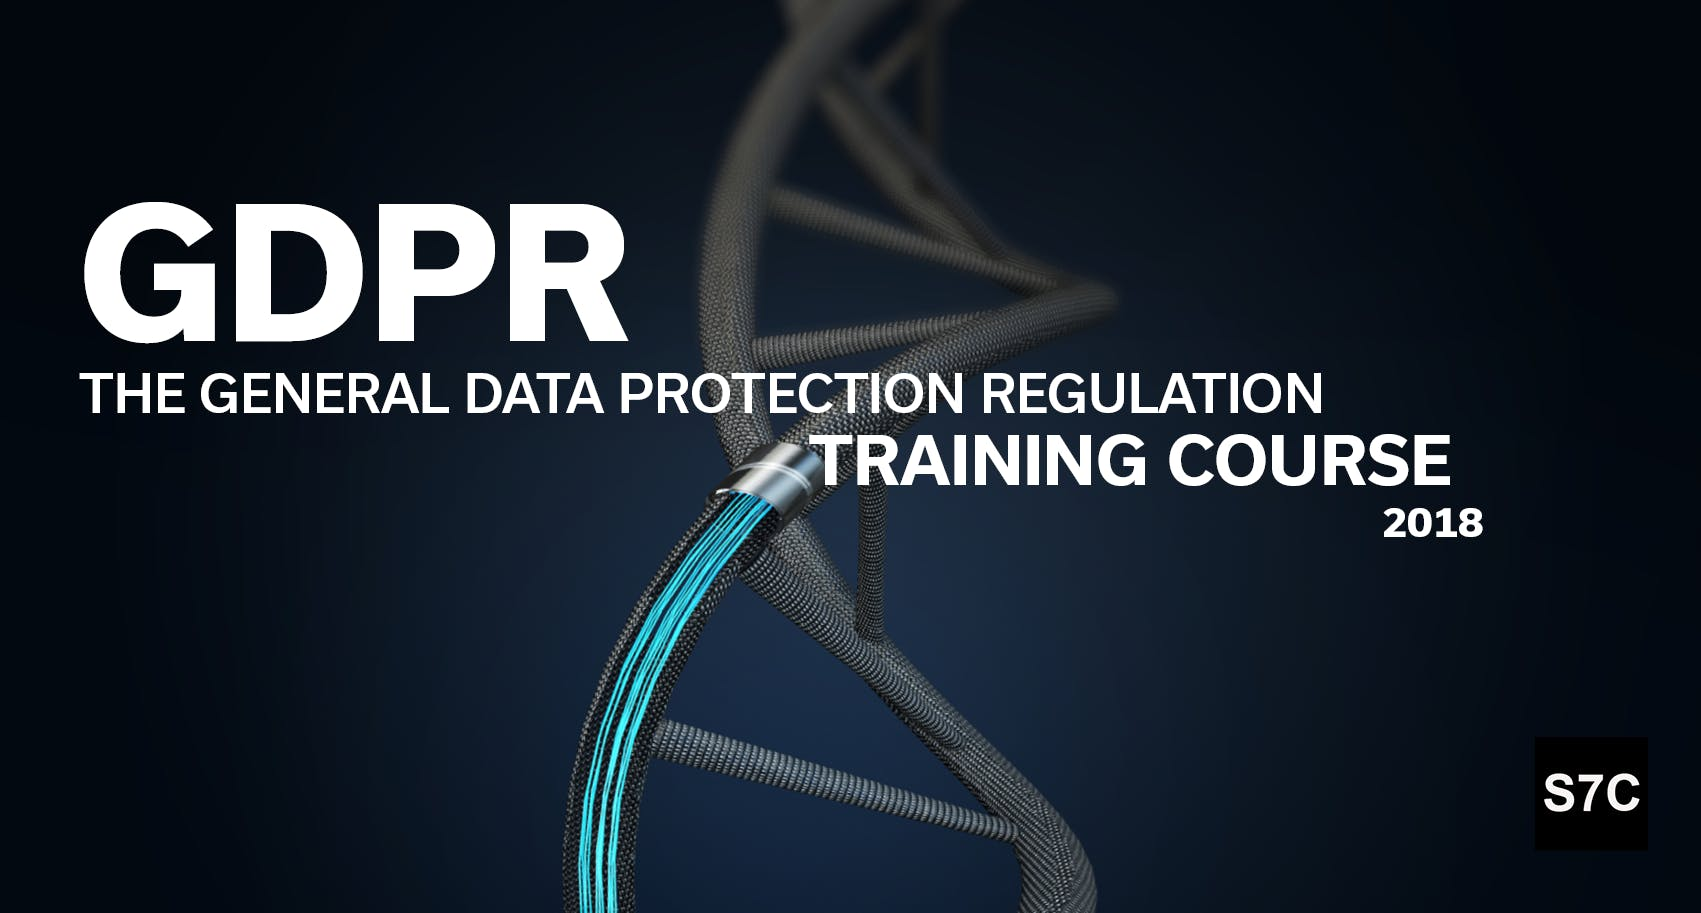 General Data Protection Regulation Gdpr For Business Training